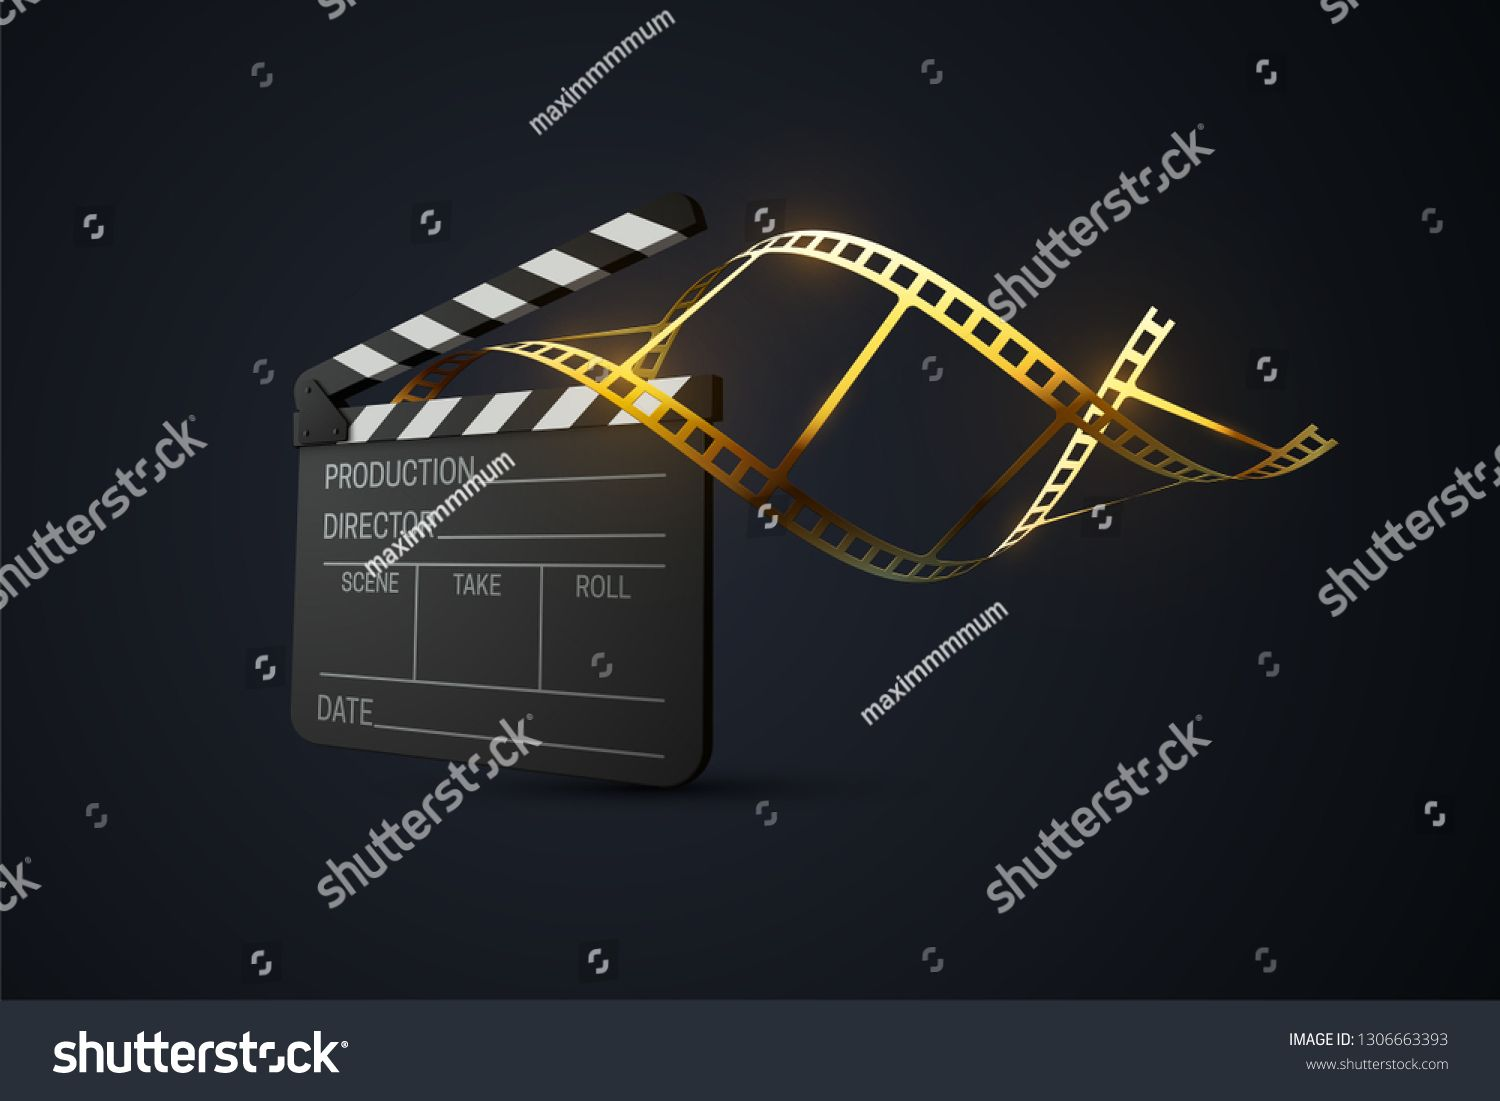 Film Clapperboard With Curled Golden Film Strip Cinema Production Or Media Industry Concept Vector 3d Illustration Film Strip Art Inspiration Painting Film